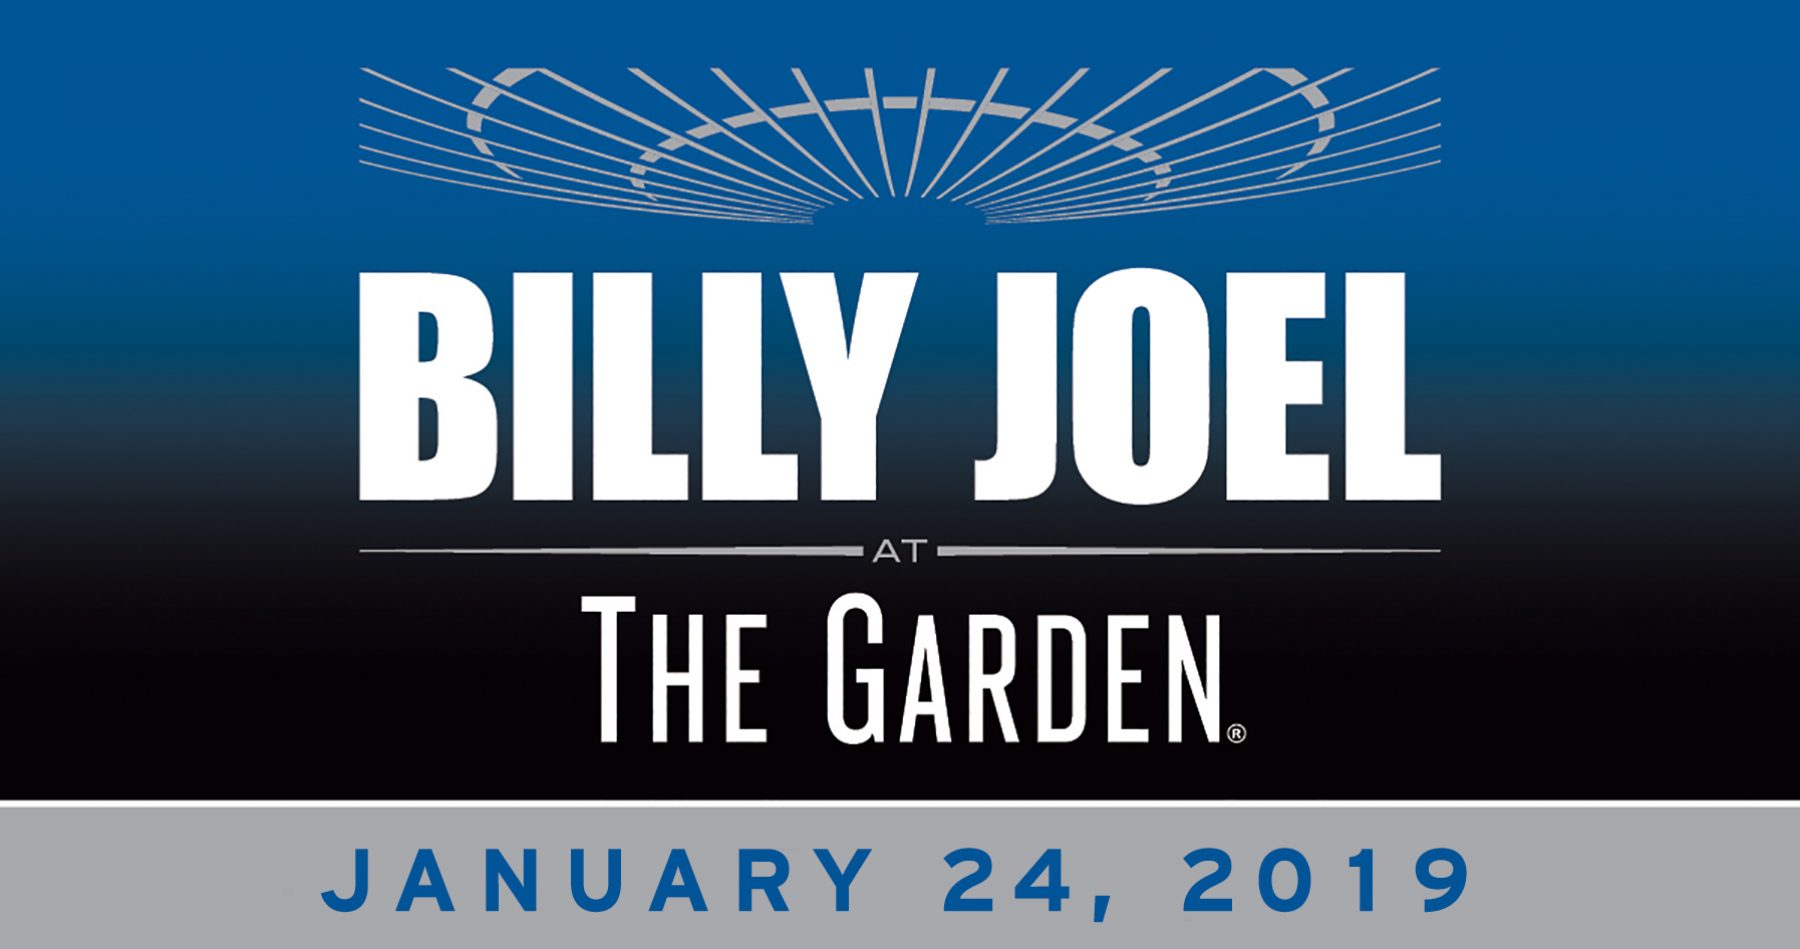 Billy Joel at The Garden January 24, 2019